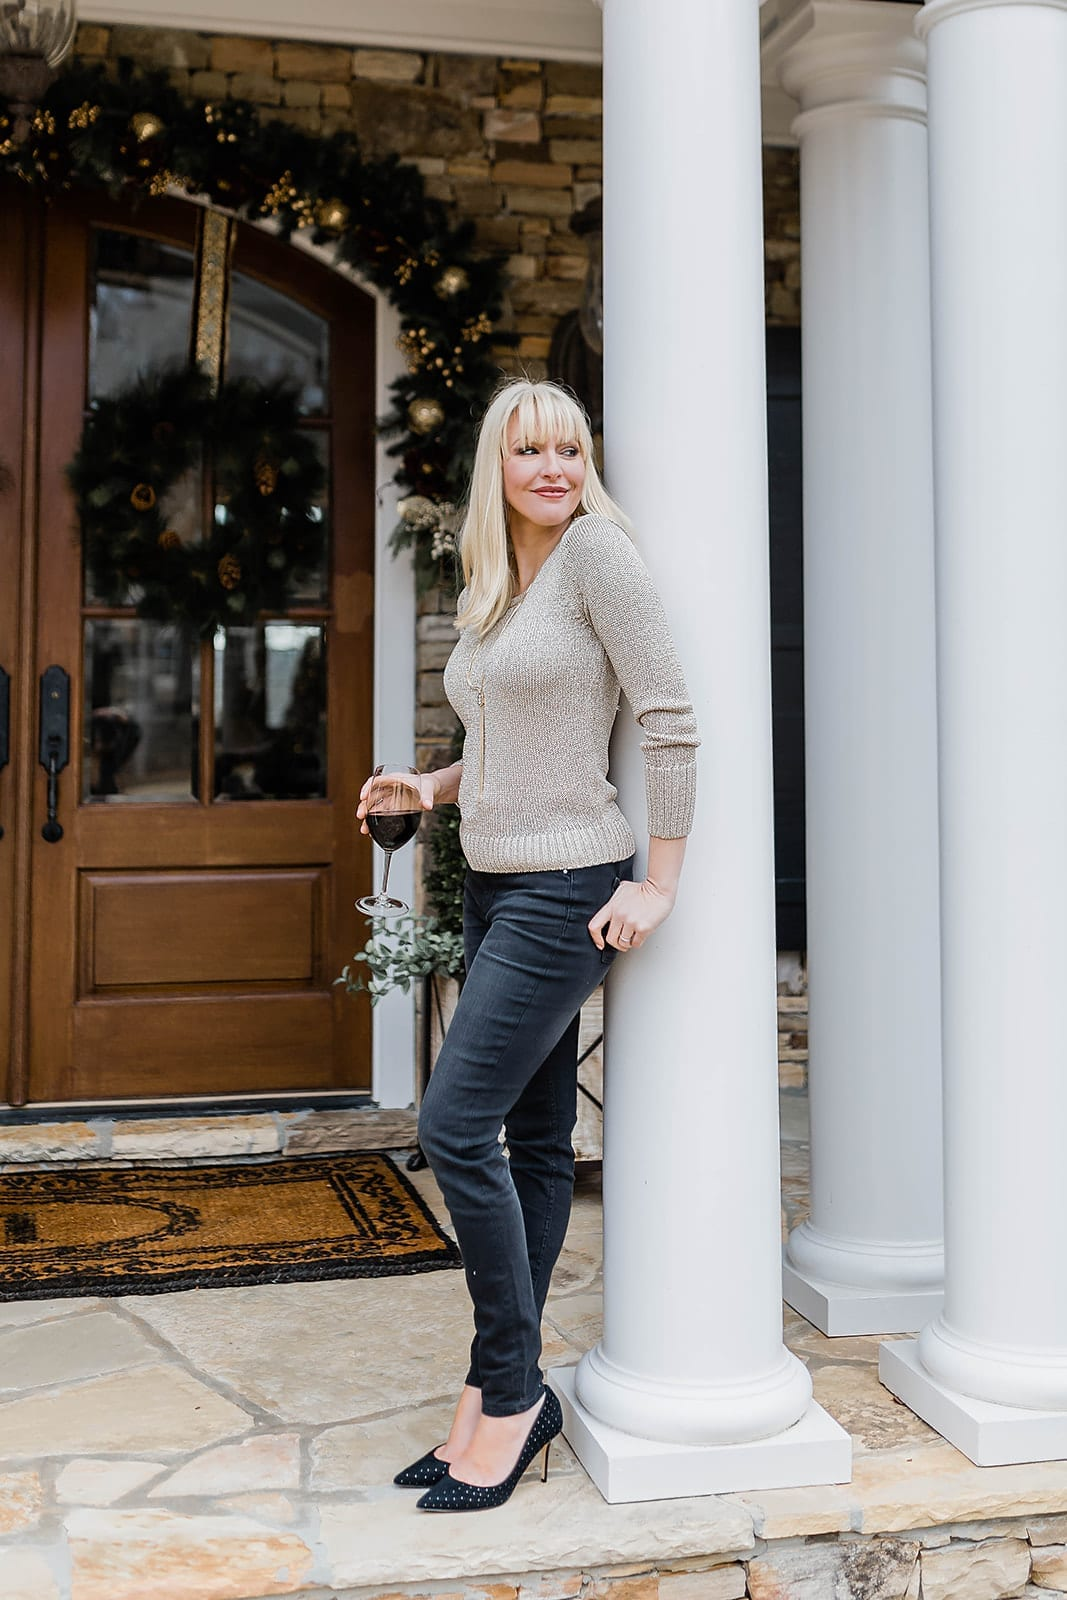 Need to look dressy but still casual? This metallic gold. knit sweater pairs perfectly with jeans. Add a shoe with little sparkles and bam - you're good to go! Entire outfit on sale!